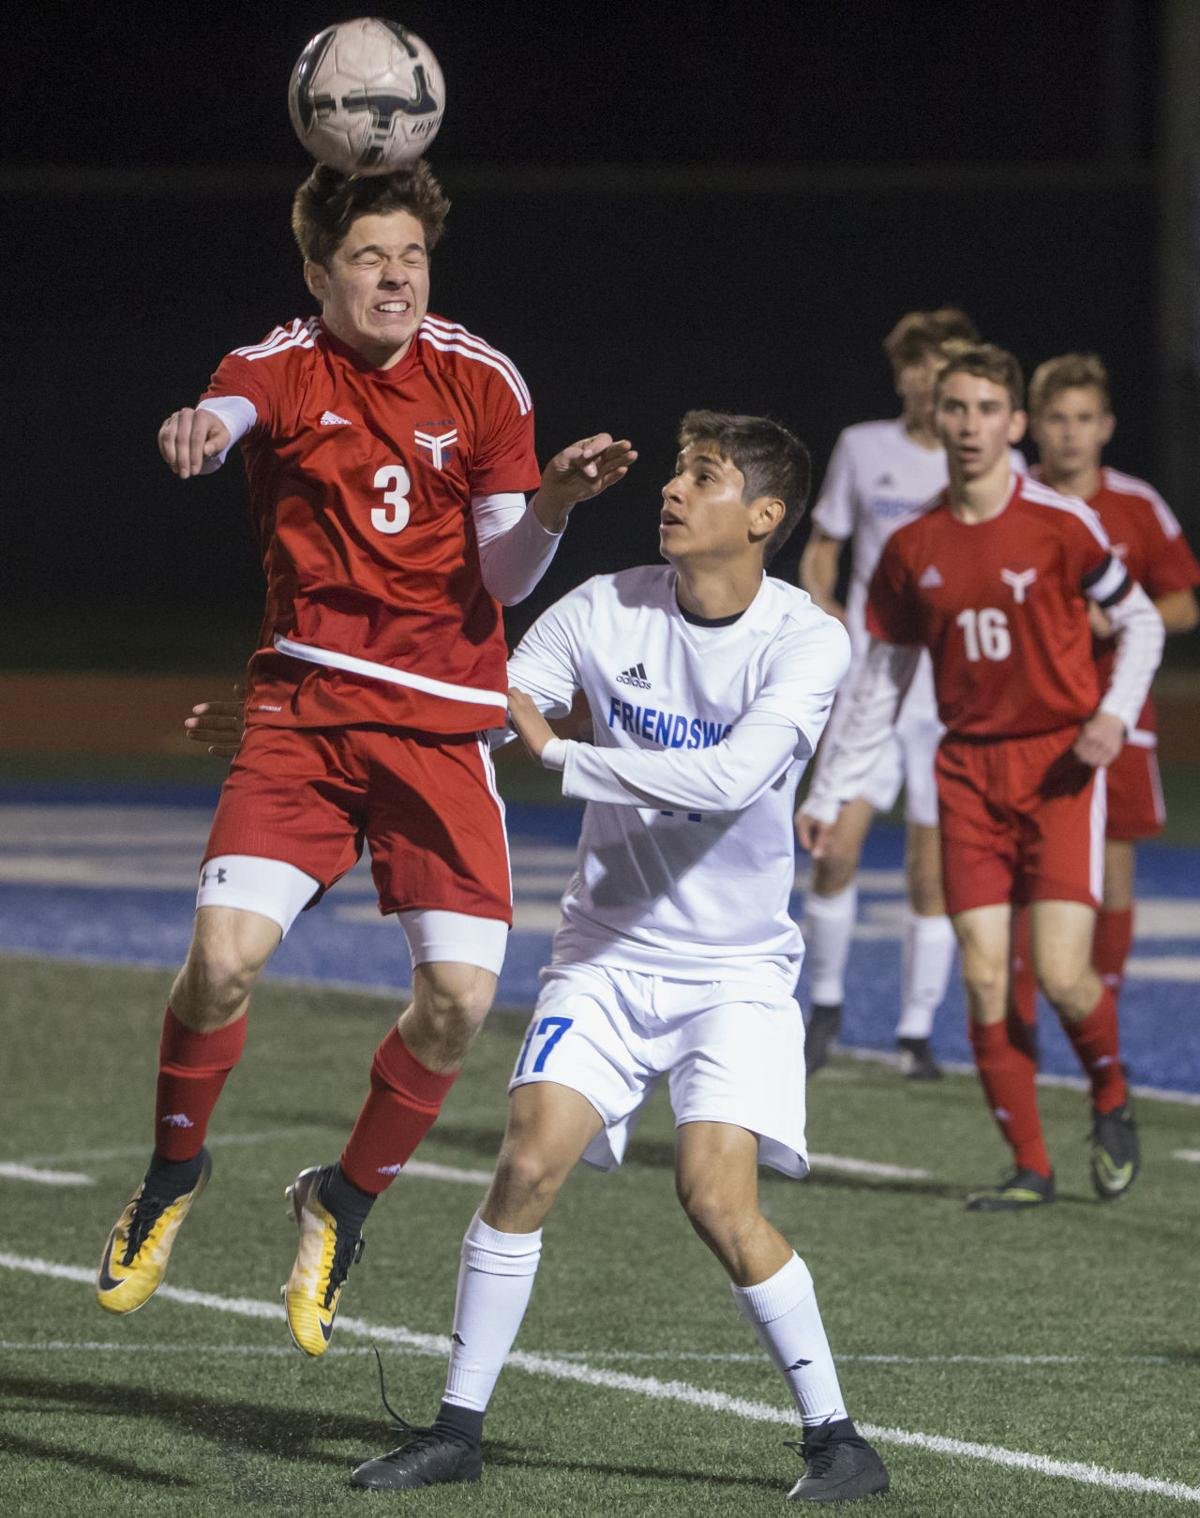 Friendswood vs Clear Lake Boys Soccer